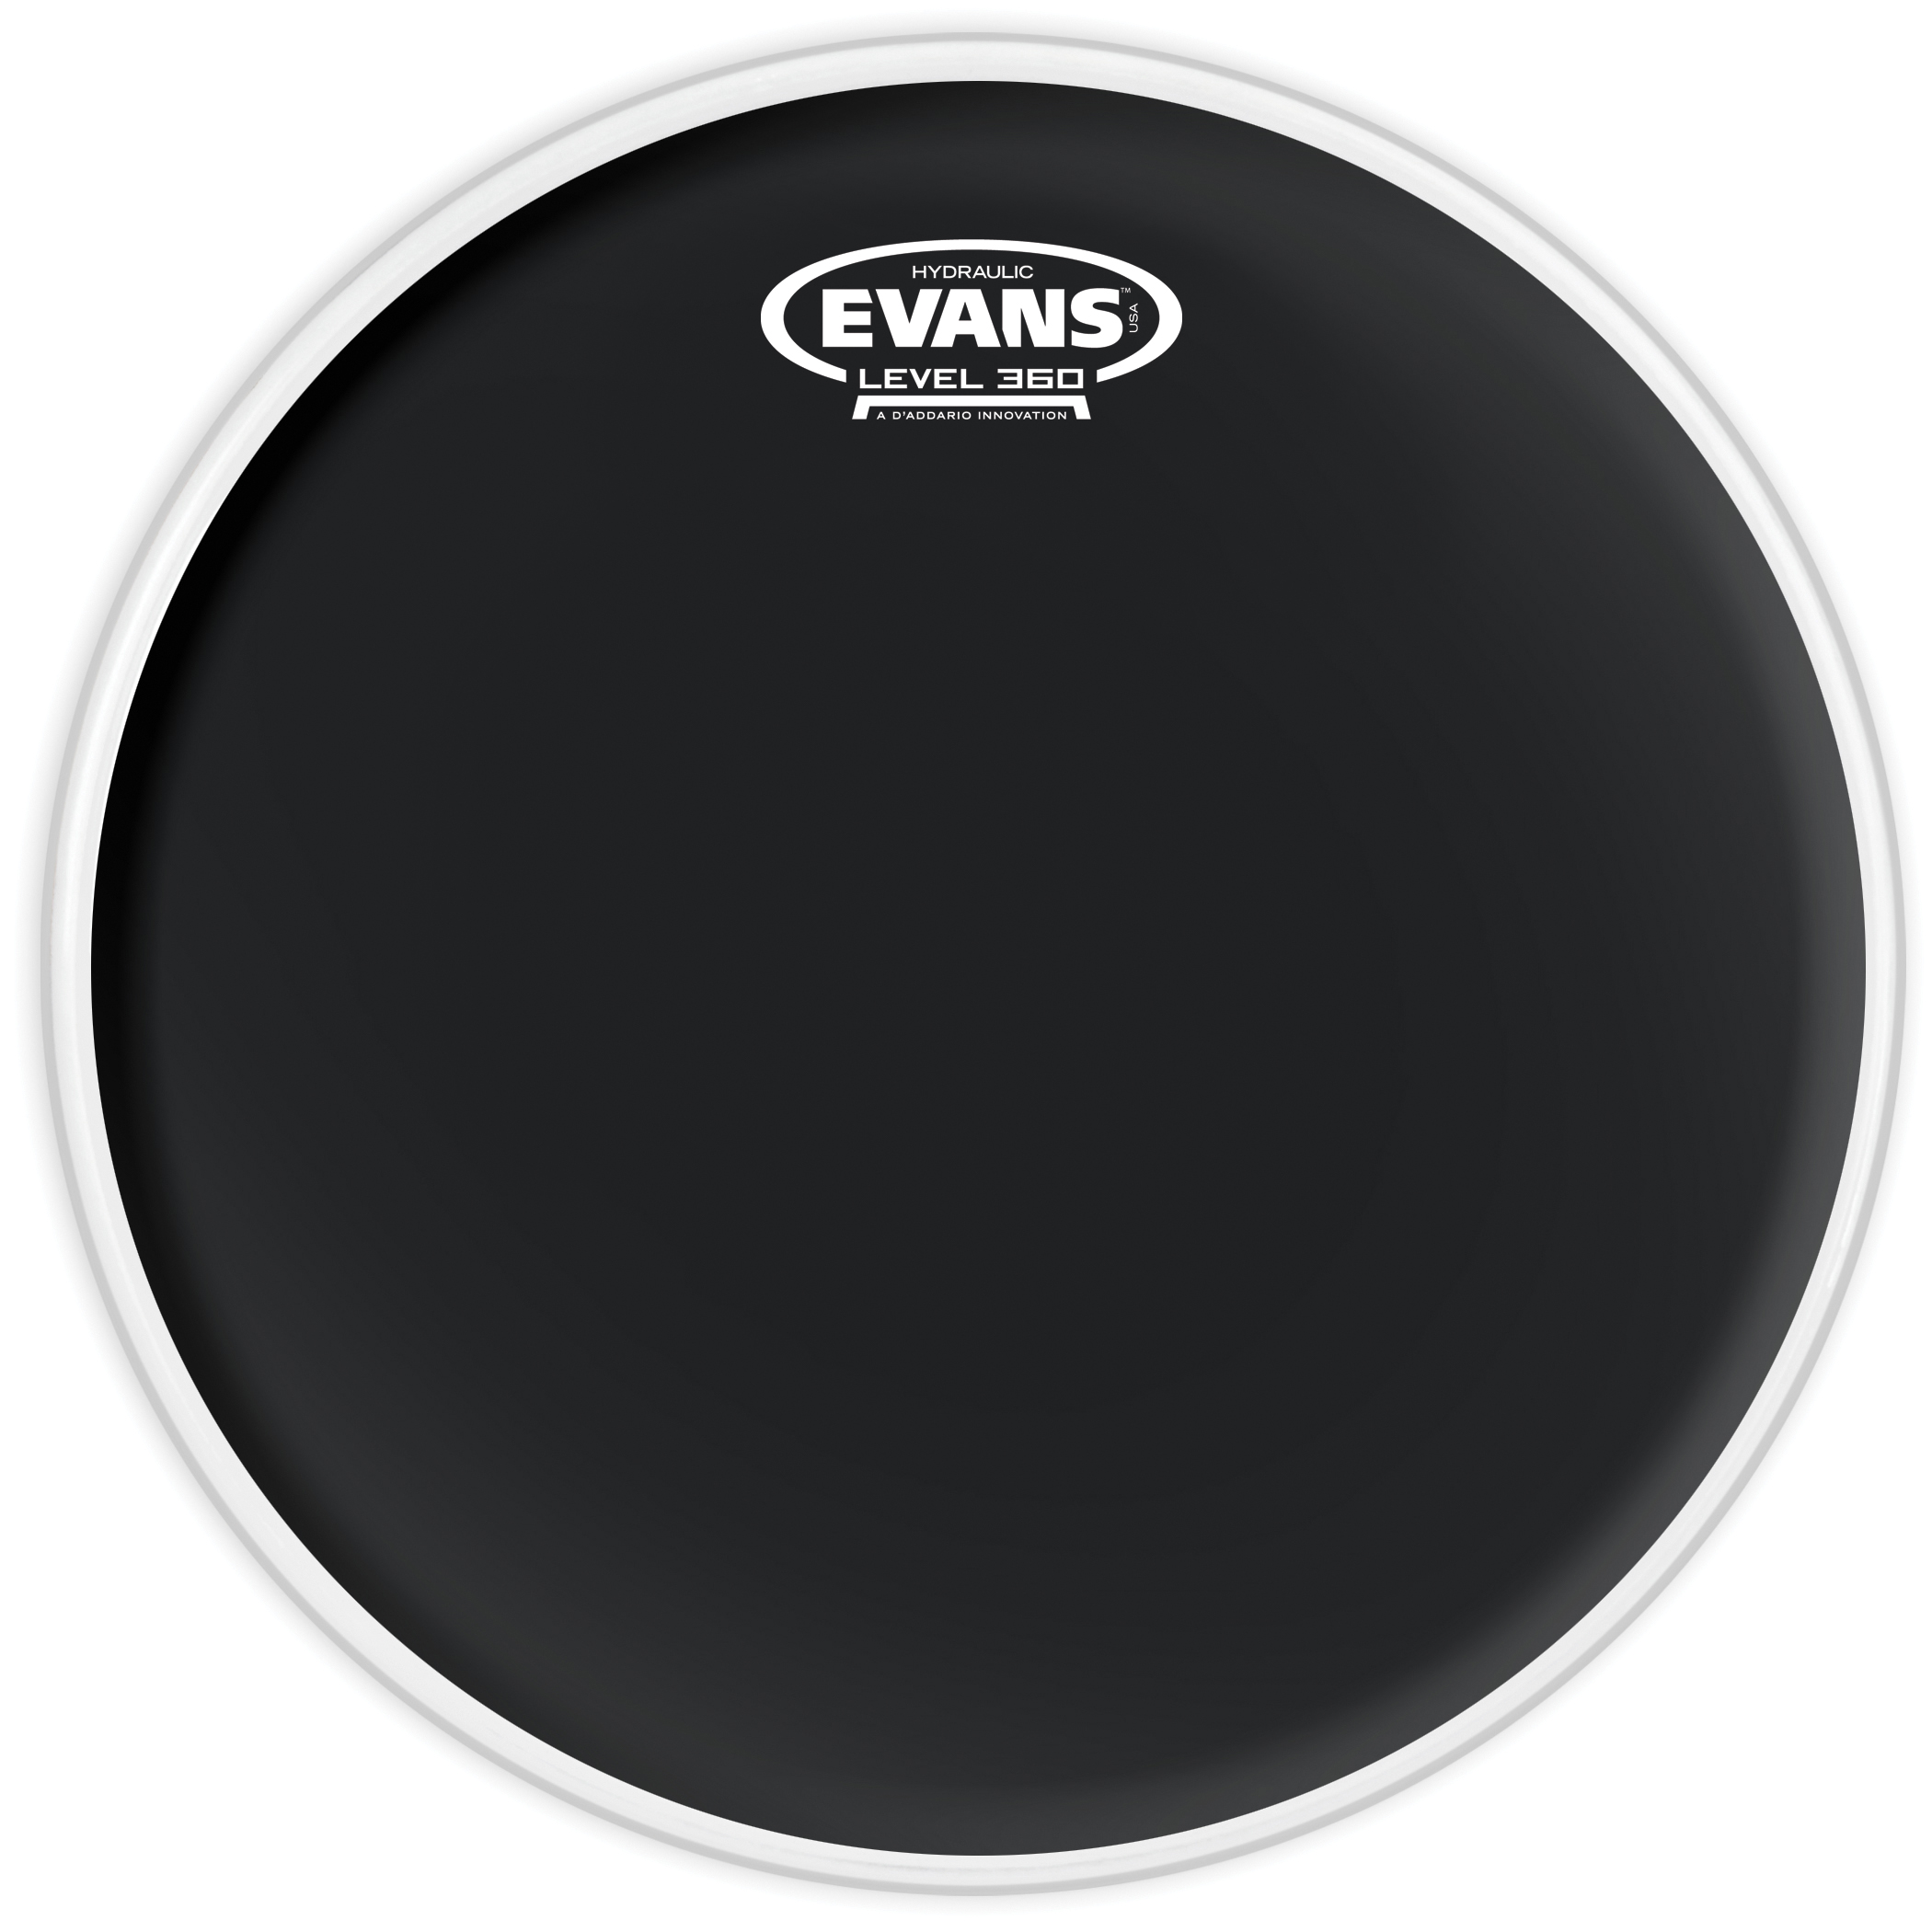 Evans Hydraulic Black Drum Head 14